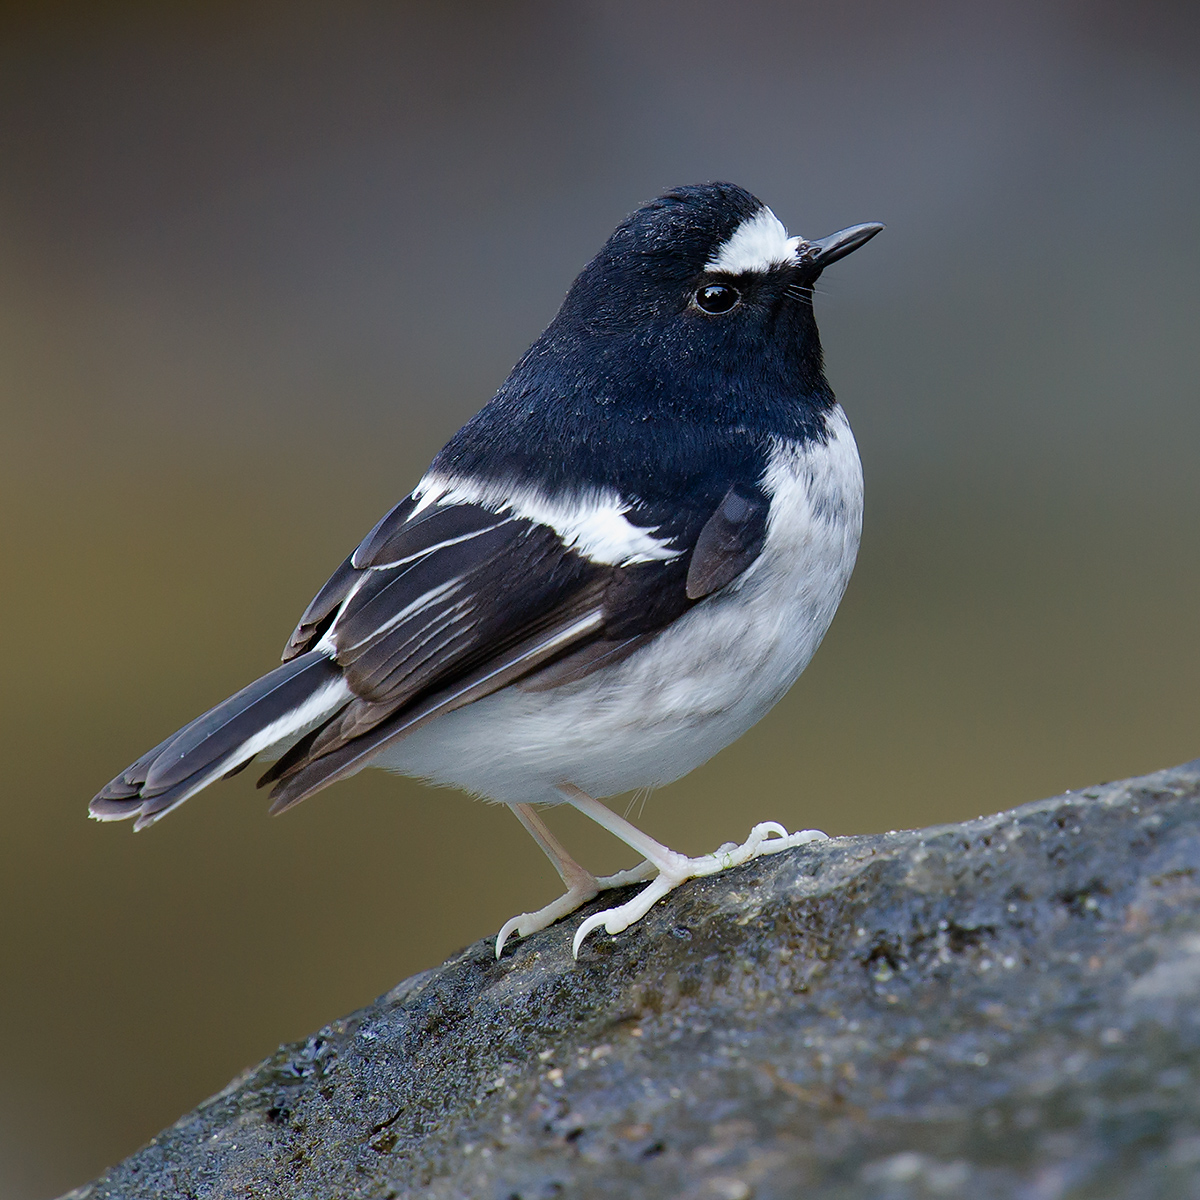 Little Forktail, Nabang, Yunnan, China, 30 Jan. 2014. (Craig Brelsford)